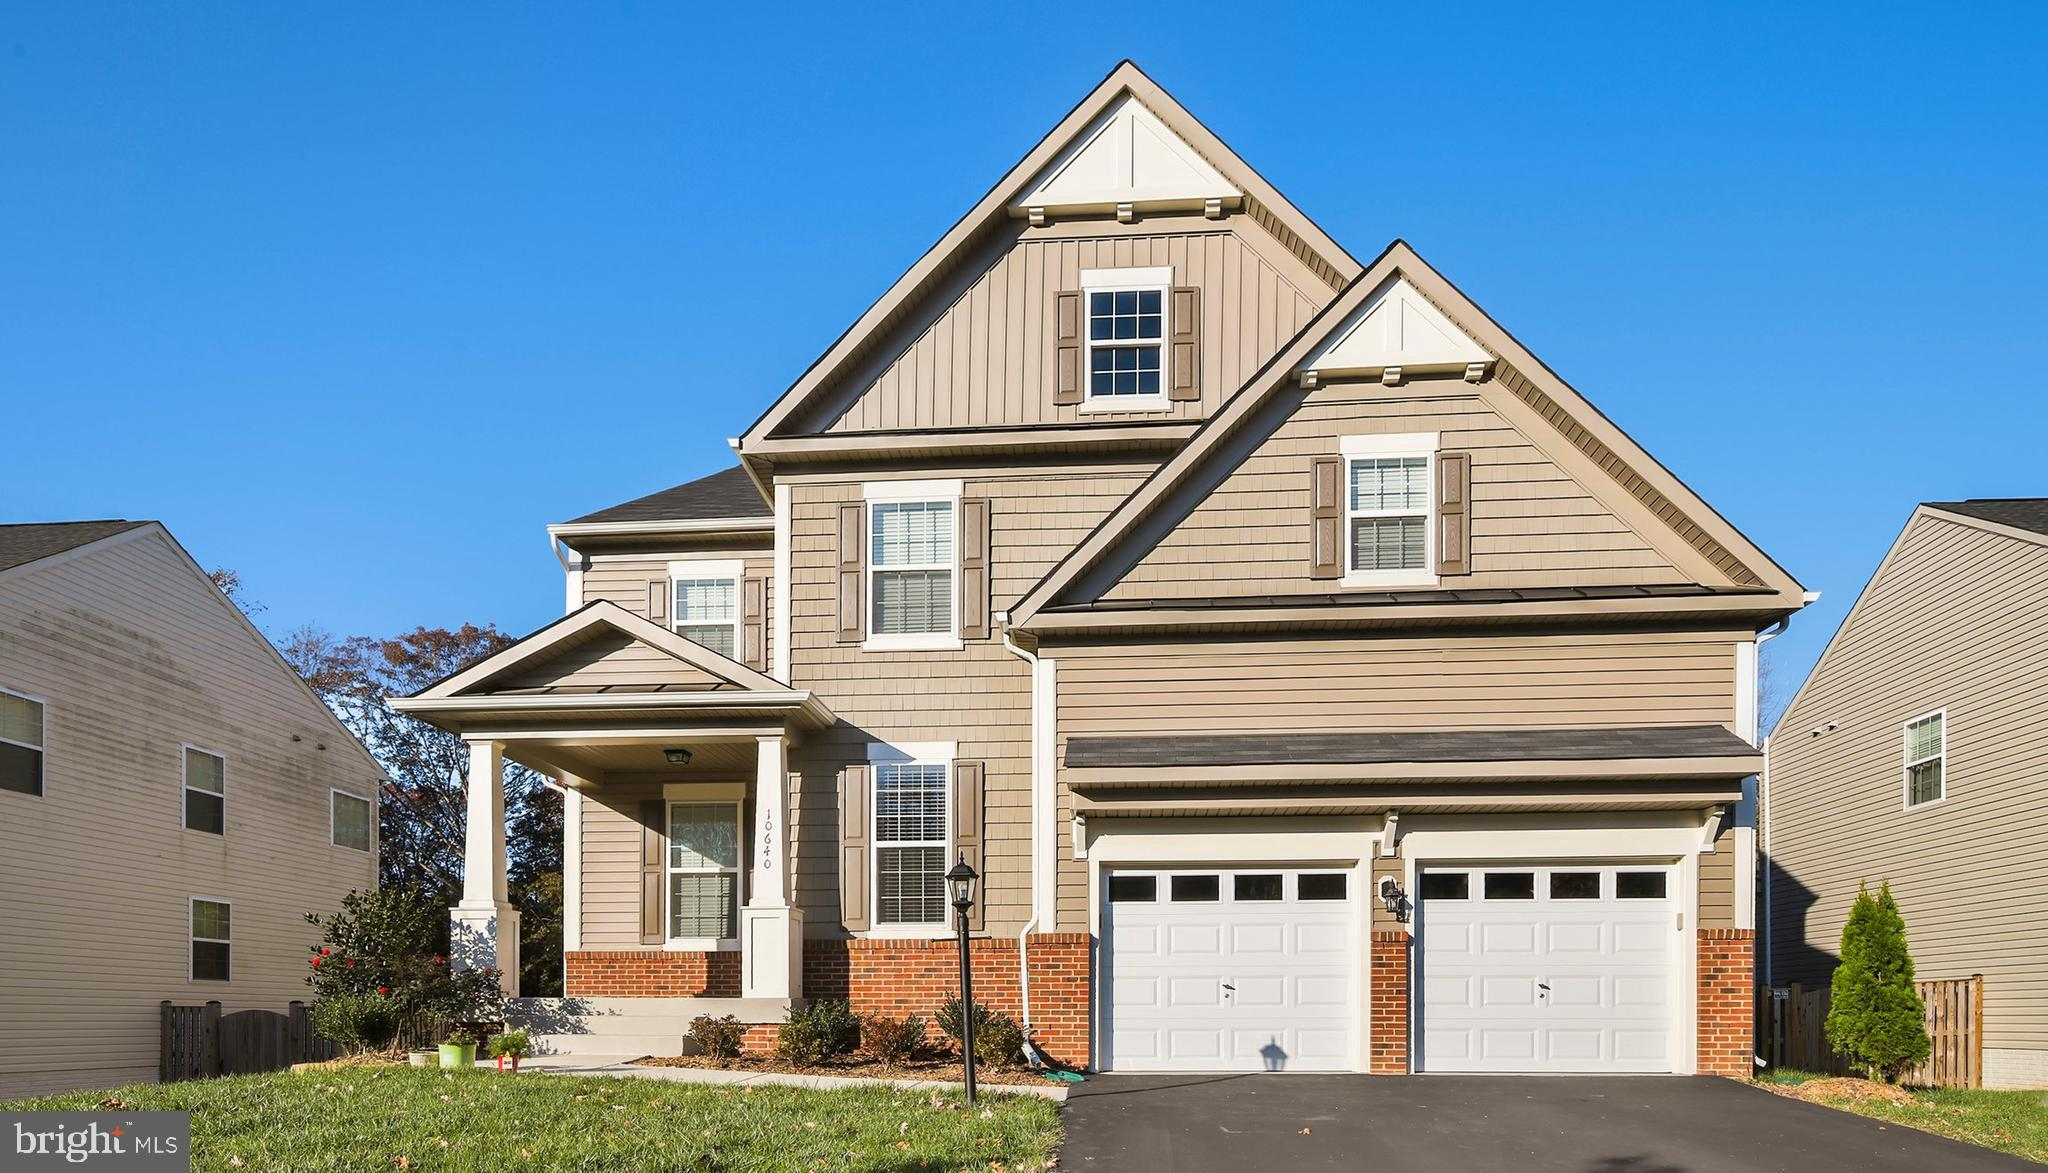 10640 SMITH POND LANE, MANASSAS, VA 20112